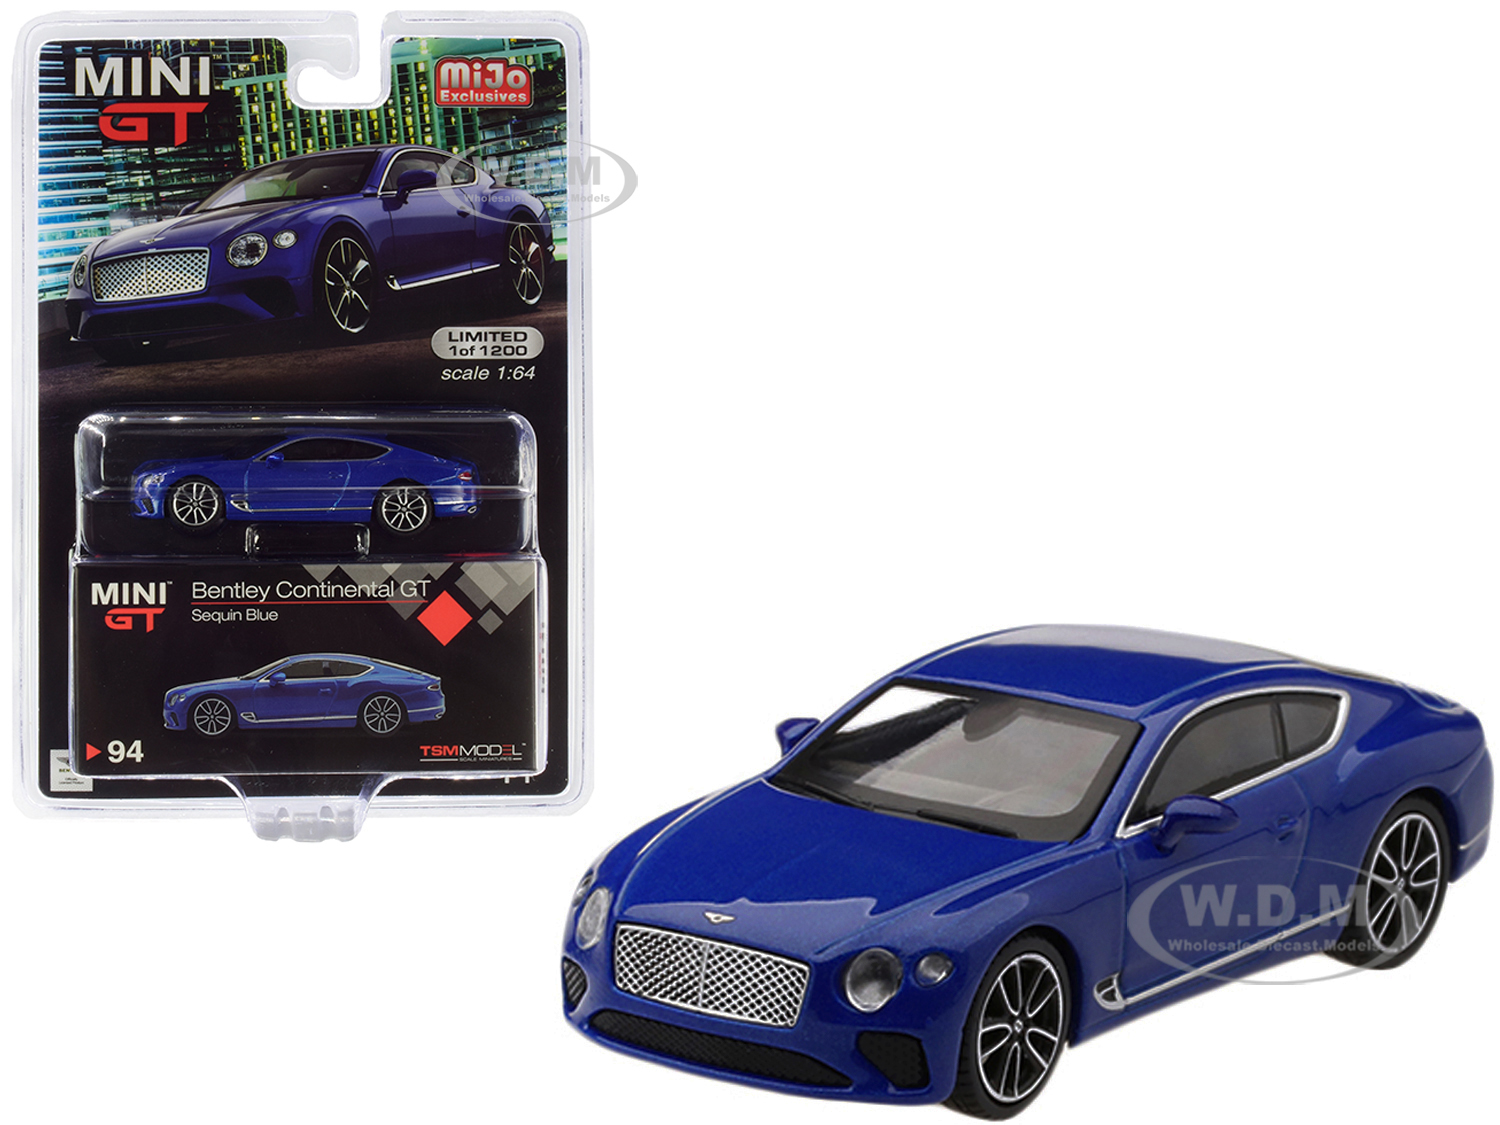 2018 Bentley Continental GT Sequin Blue Metallic Limited Edition to 1200 pieces Worldwide 1/64 Diecast Model Car by True Scale Miniatures